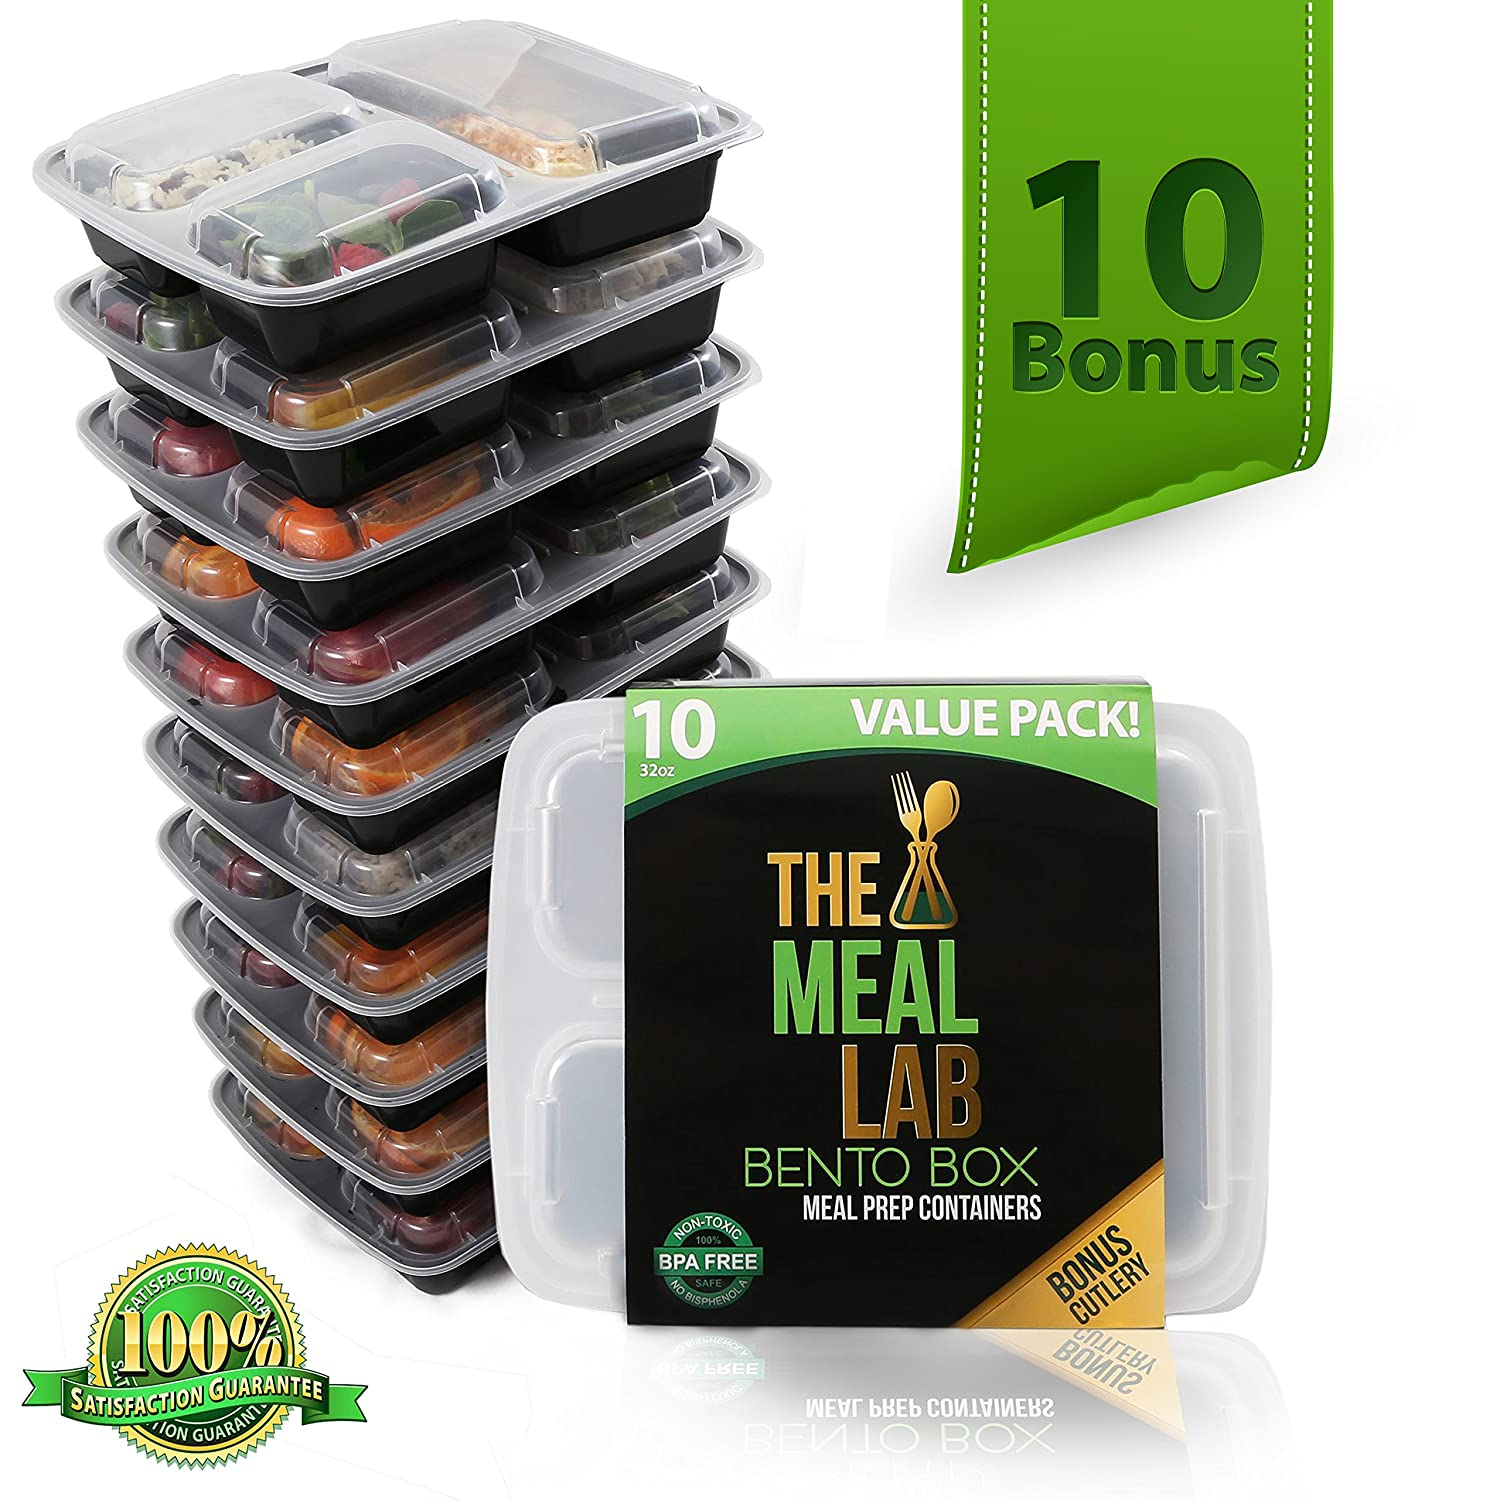 PREMIUM-PACK - Long Lasting 3-Compartment BPA FREE Stackable Meal Prep Food Storage Containers with Lids | Microwave & Dishwasher Safe Bento Lunch Box | Portion Control Plates + FREE Weight Loss Book